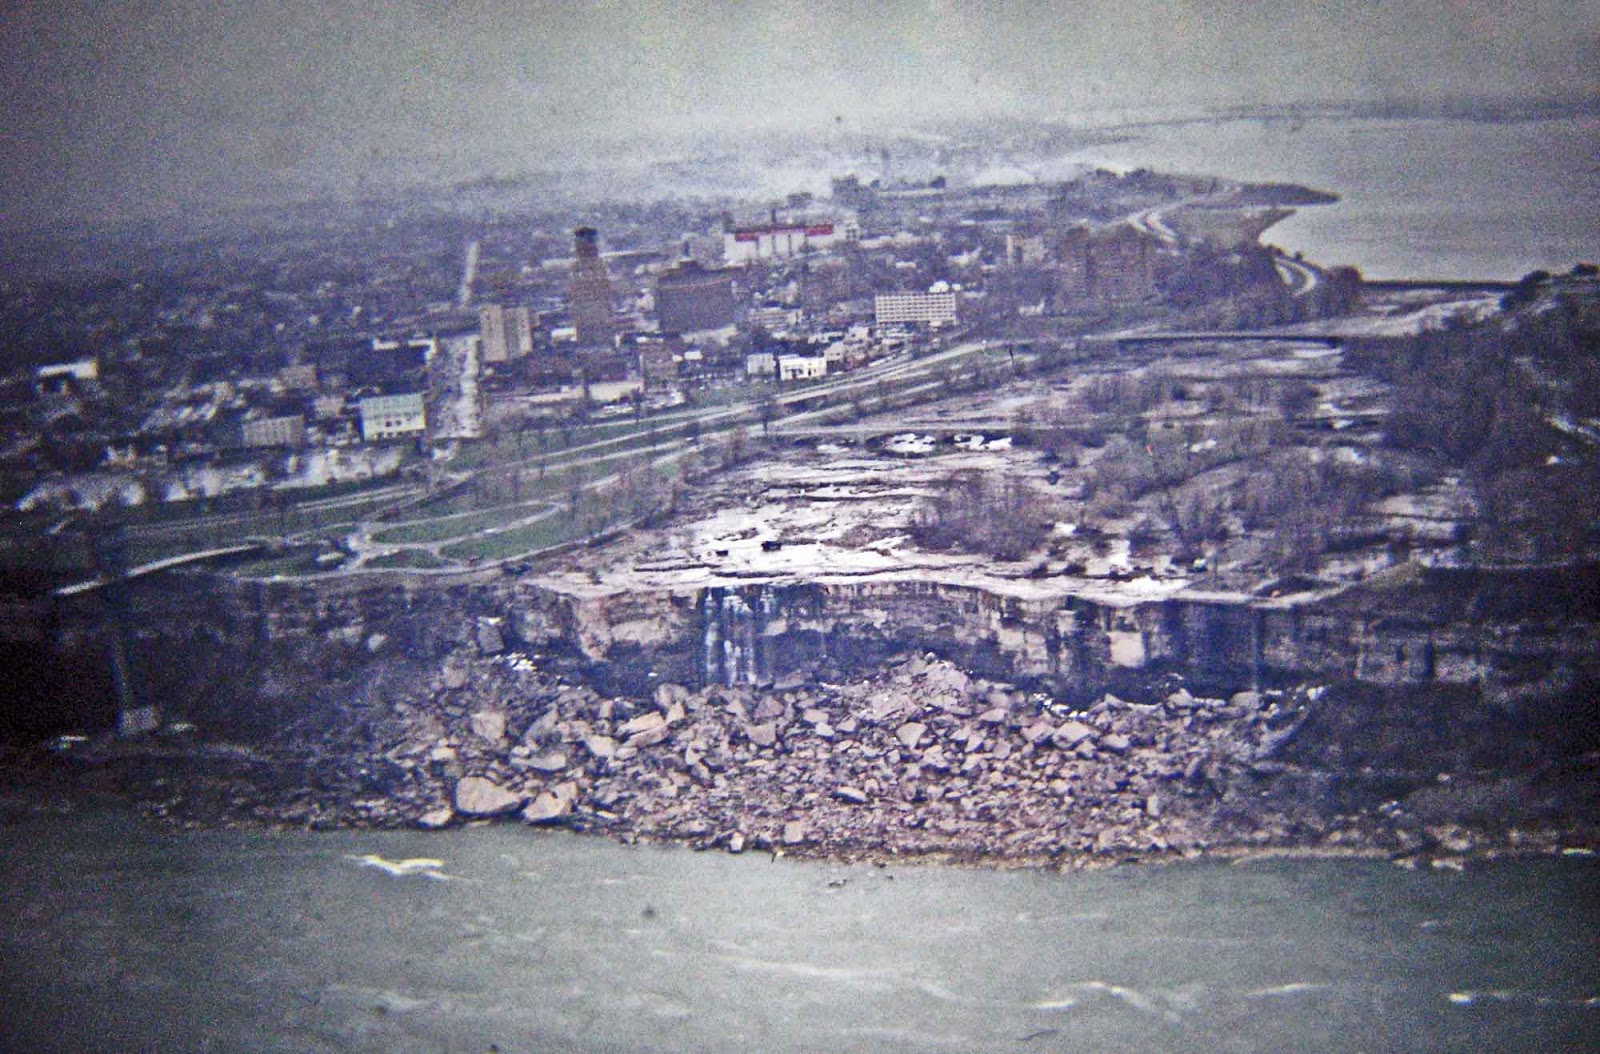 niagara_falls_without_water_1969.jpg